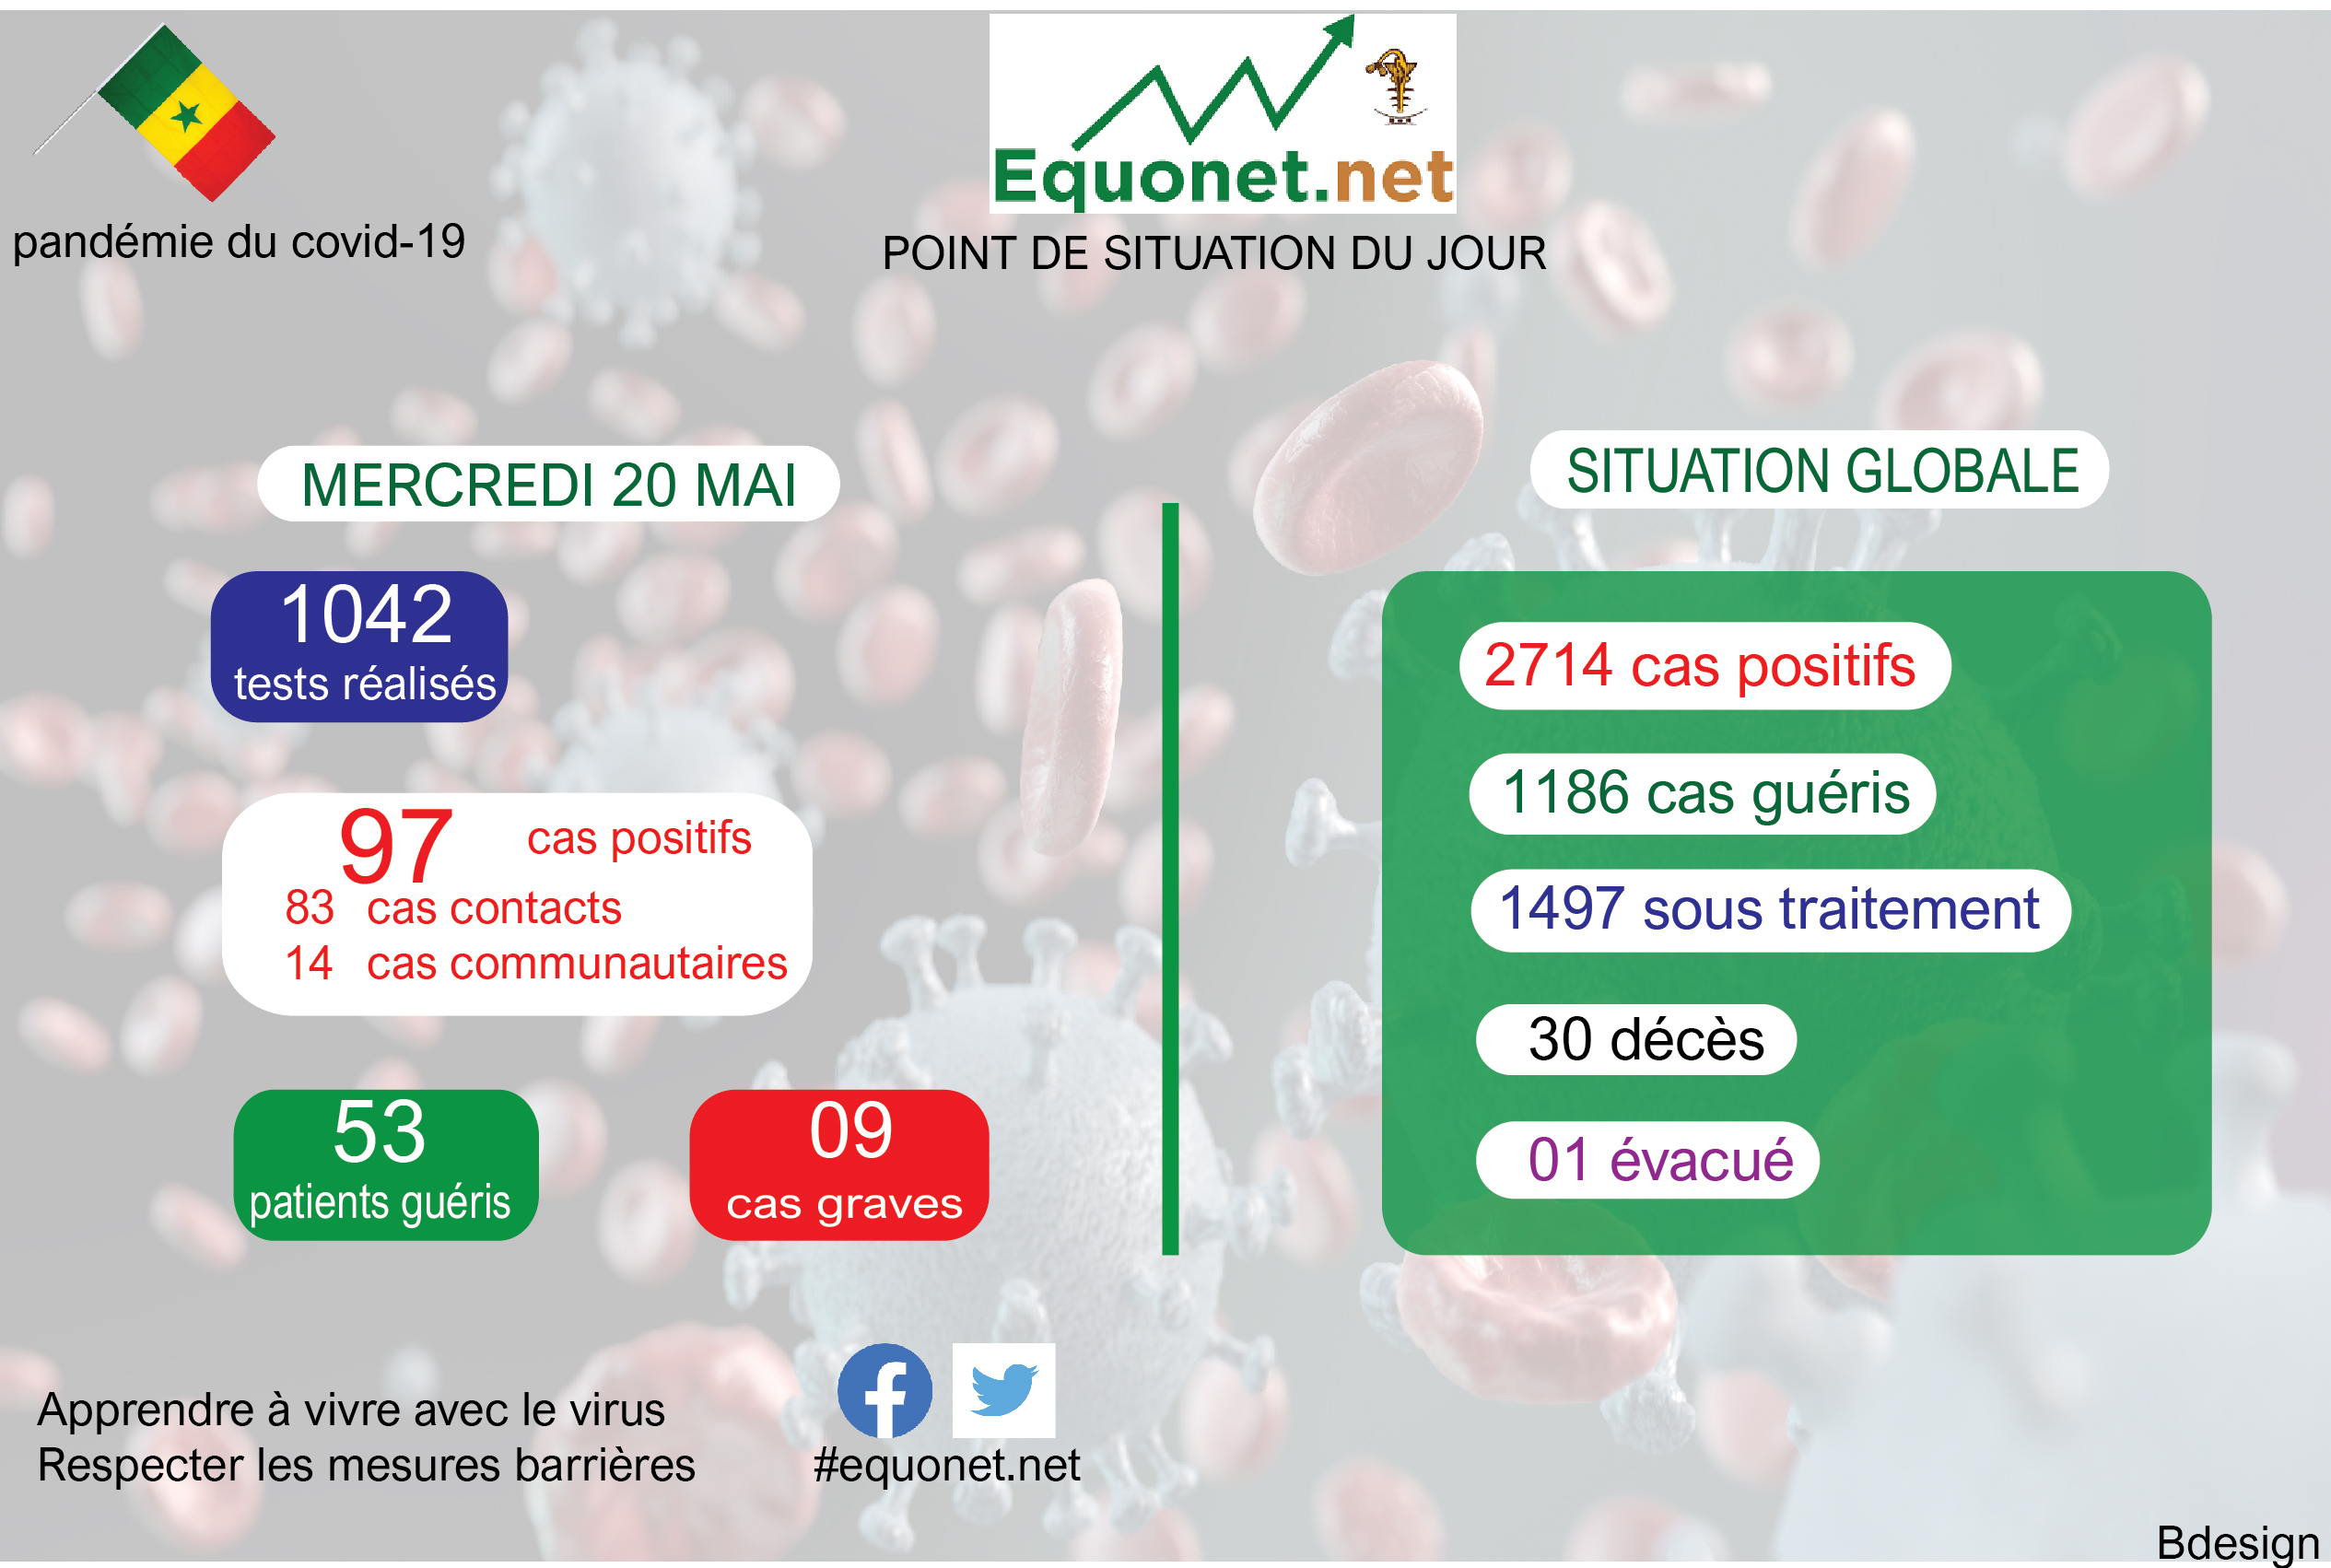 pandémie du coronavirus-covid-19 au sénégal : point de situation du mercredi 20 mai 2020